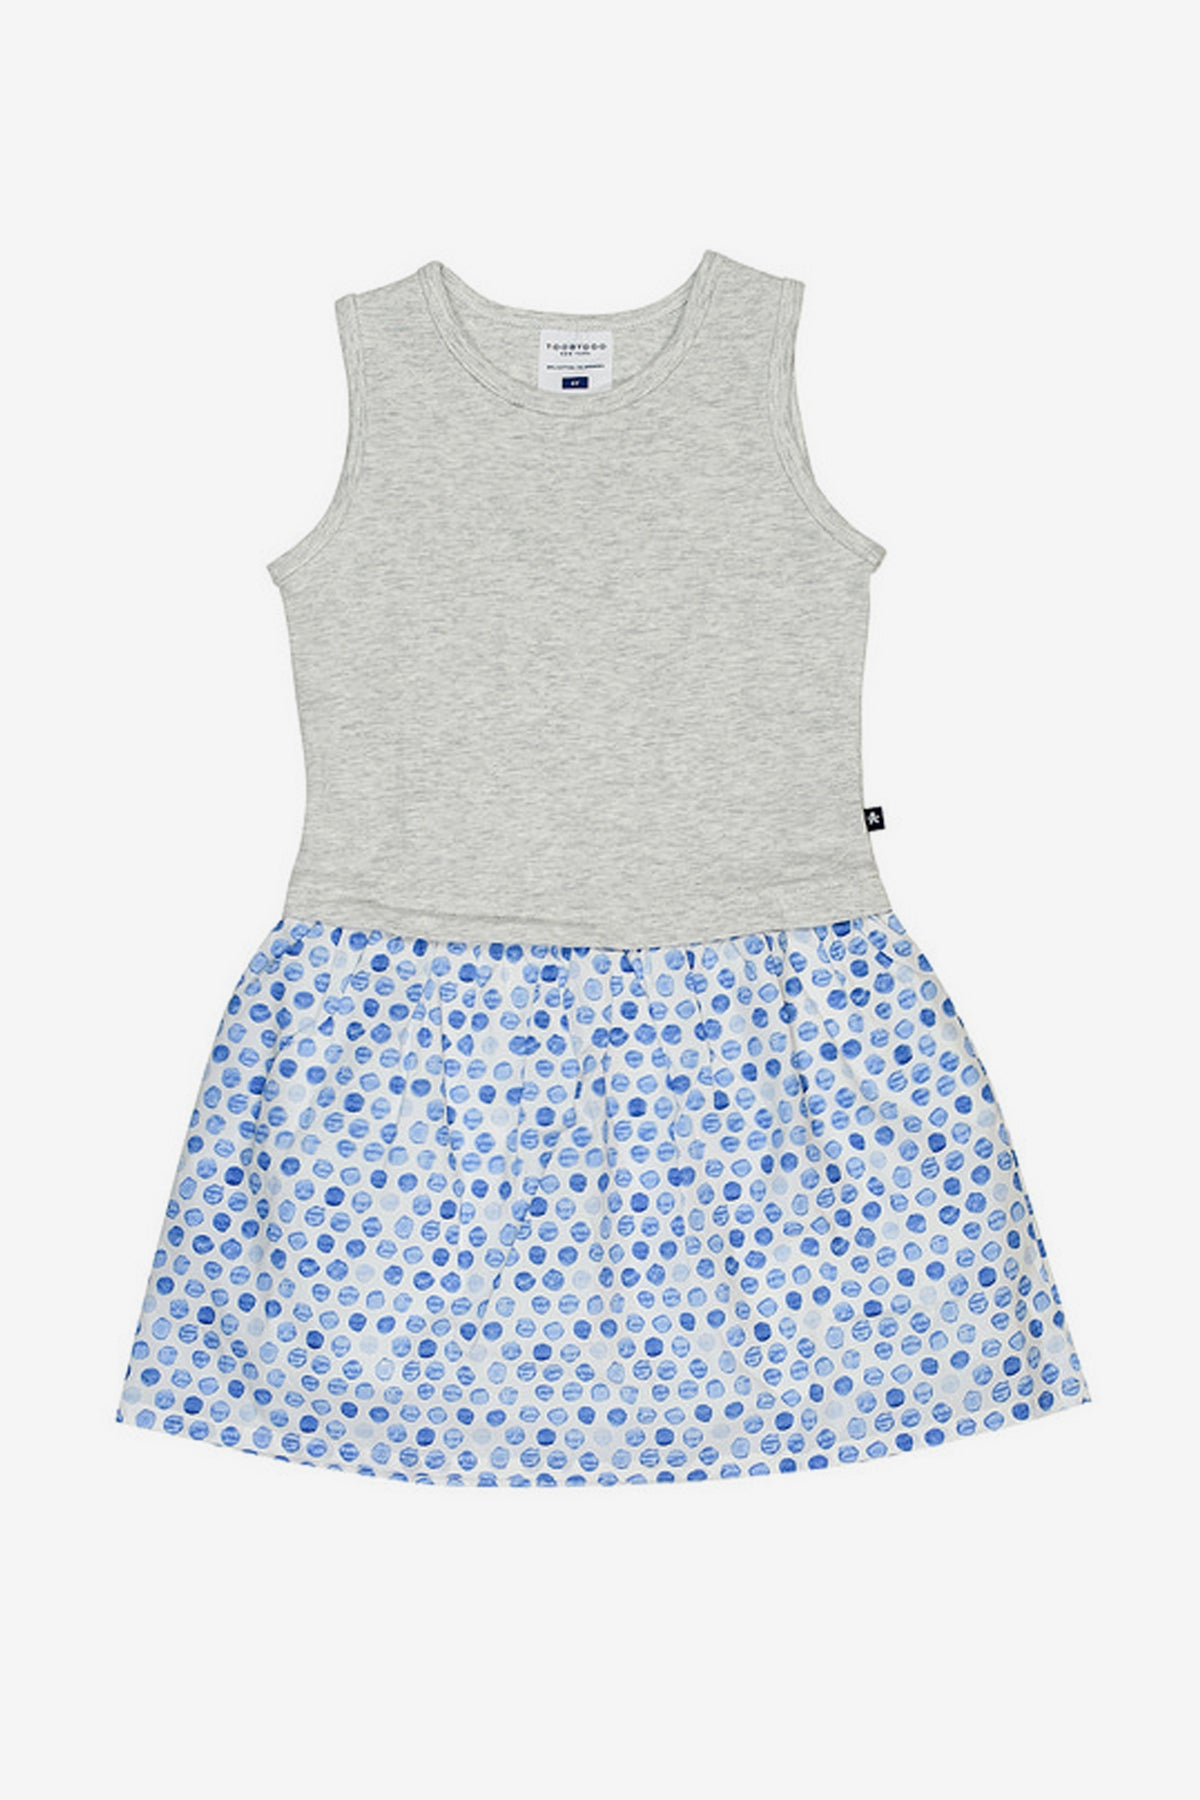 420dc961eb Toobydoo Girls Jersey and Woven Dress - Mini Ruby